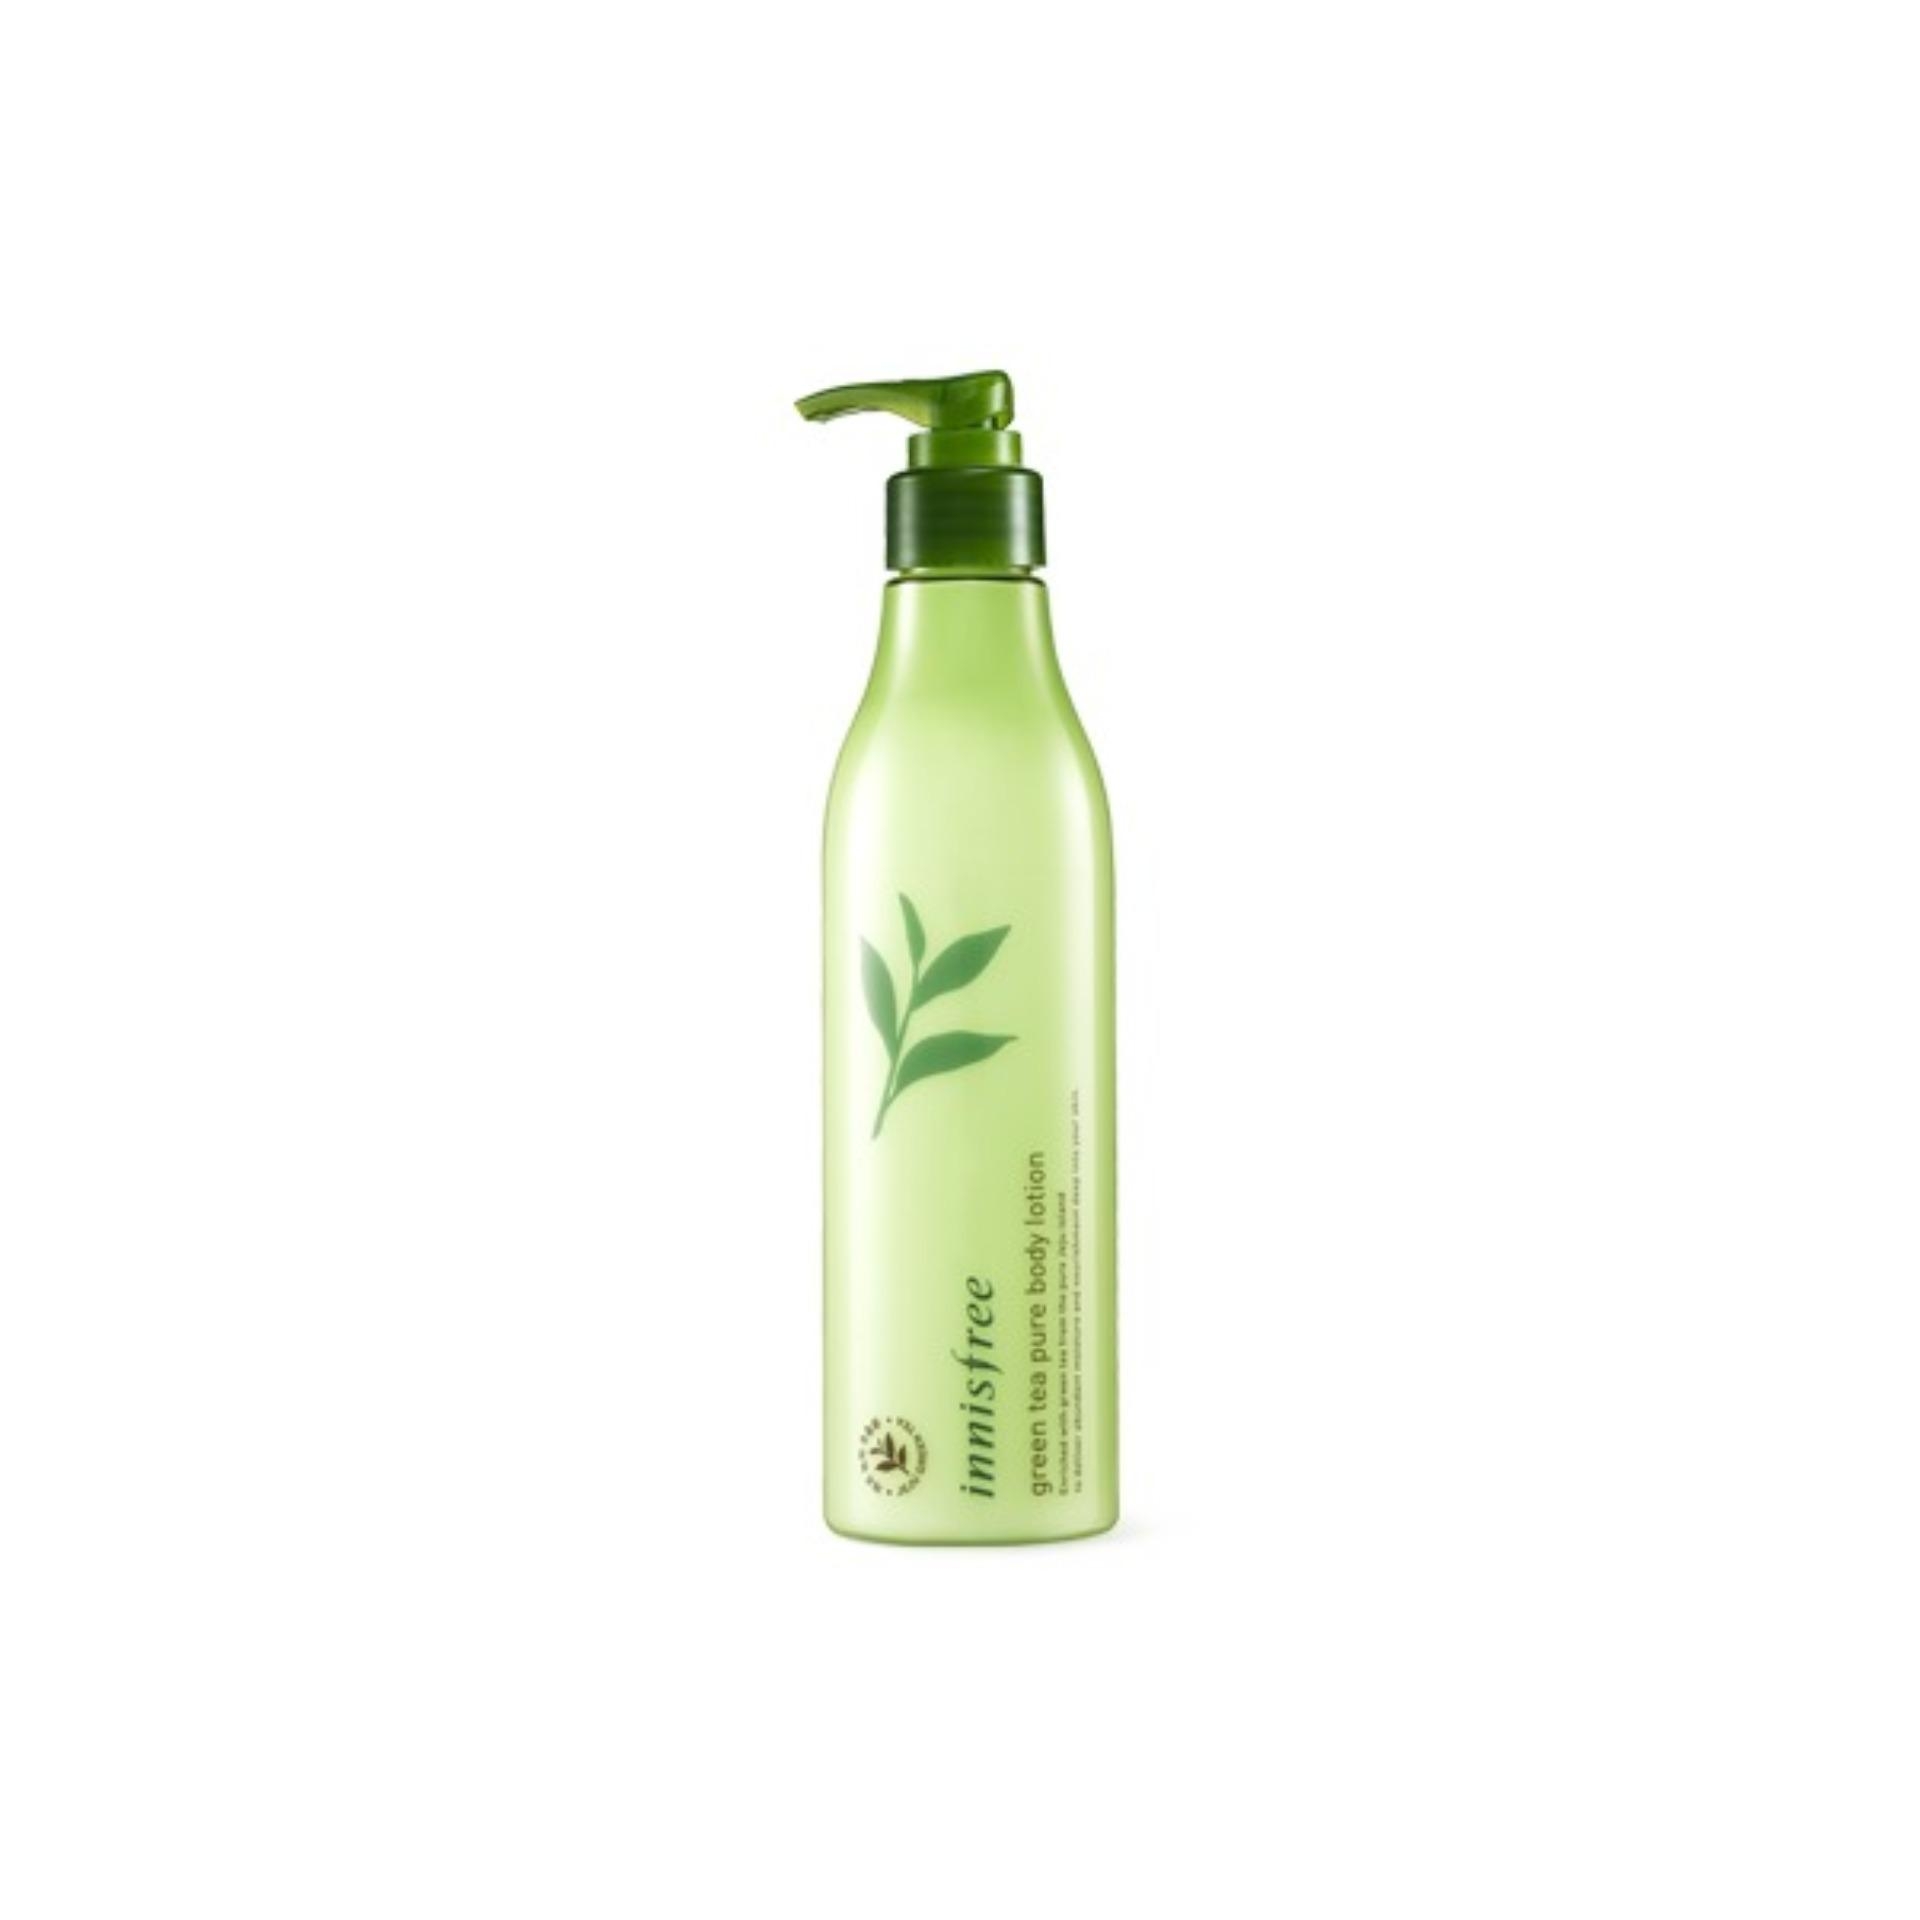 Innisfree Green Tea Pure Body Lotion 300Ml Sale